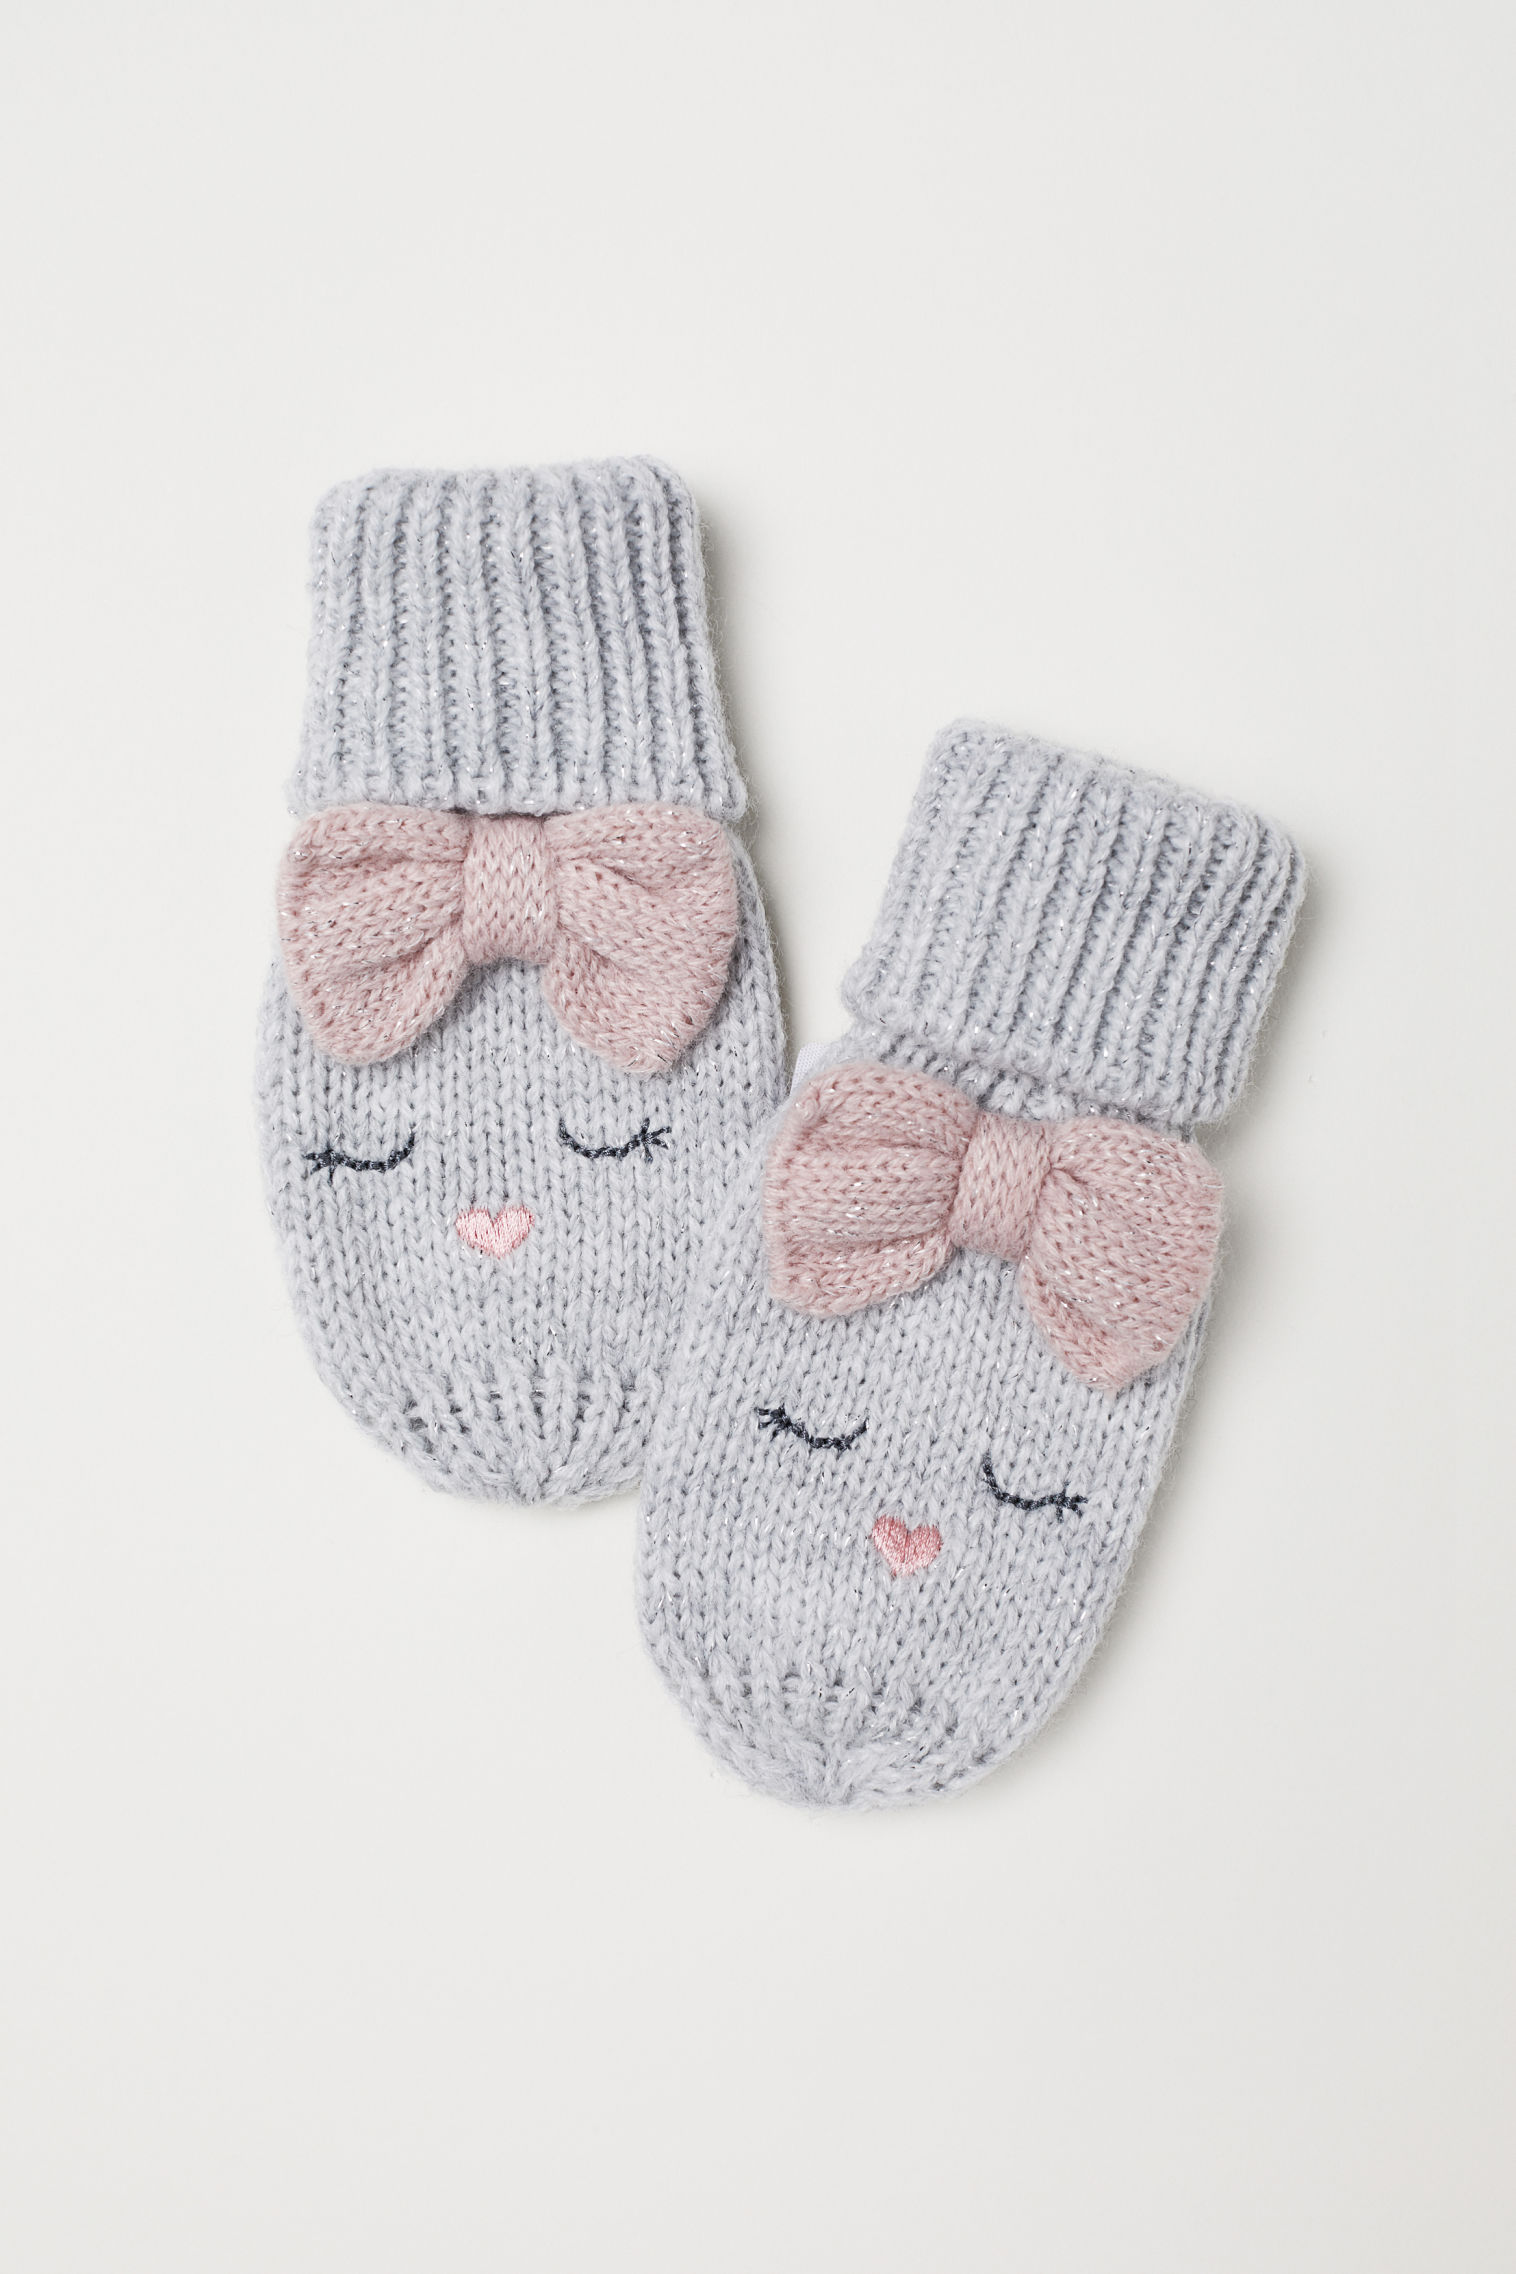 Knitted mittens | H&M UAE